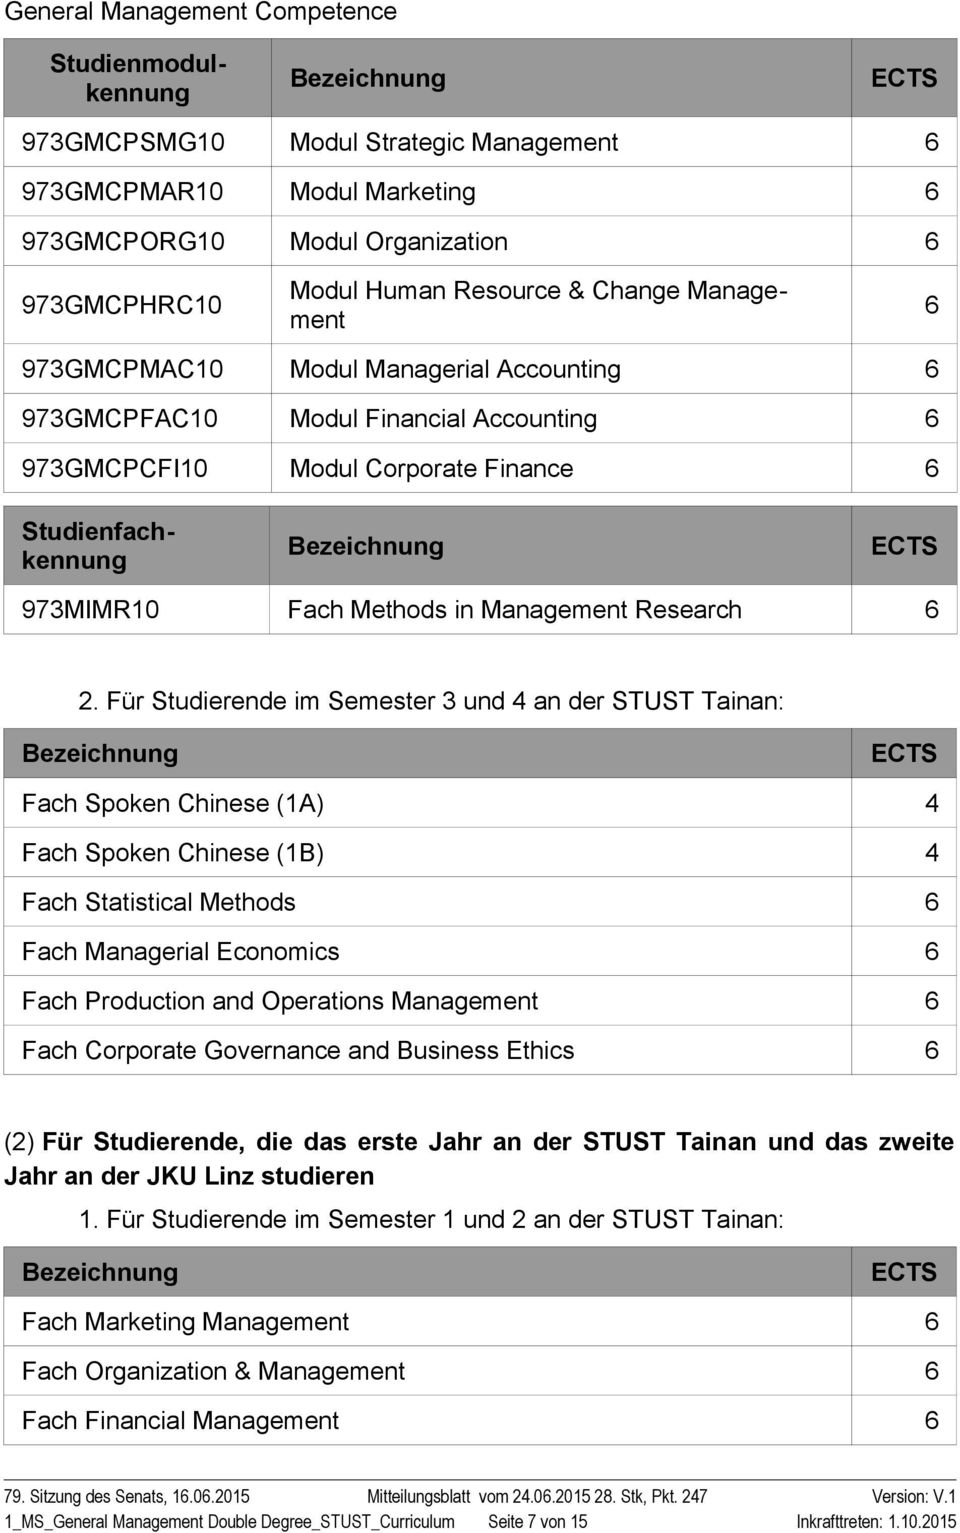 Für Studierende im Semester 3 und 4 an der STUST Tainan: Fach Spoken Chinese (1A) 4 Fach Spoken Chinese (1B) 4 Fach Statistical Methods Fach Managerial Economics Fach Production and Operations